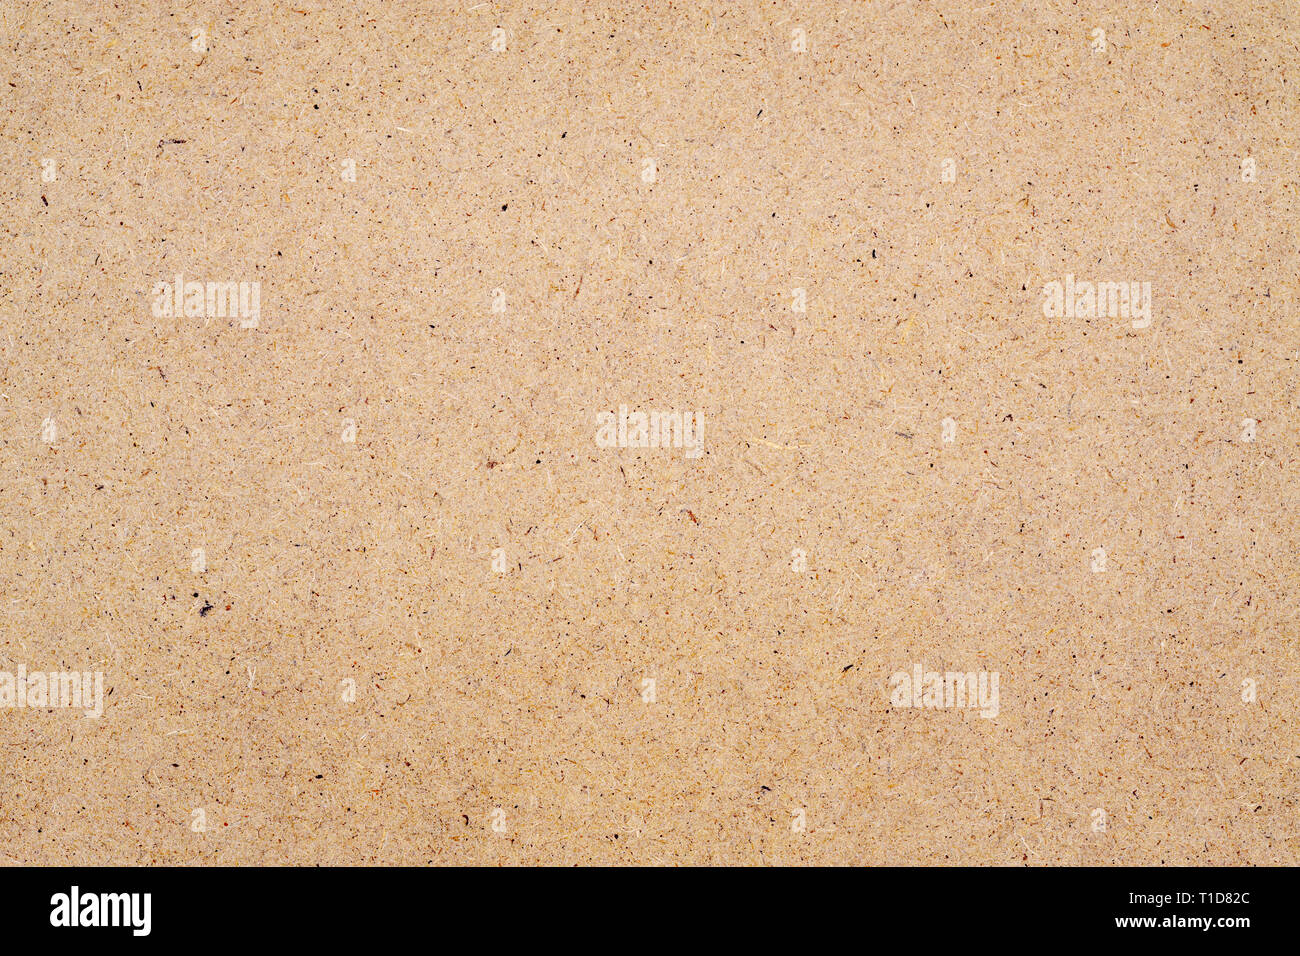 Close up of brown board wood texture made of recycled paper wood for background usage - Stock Image